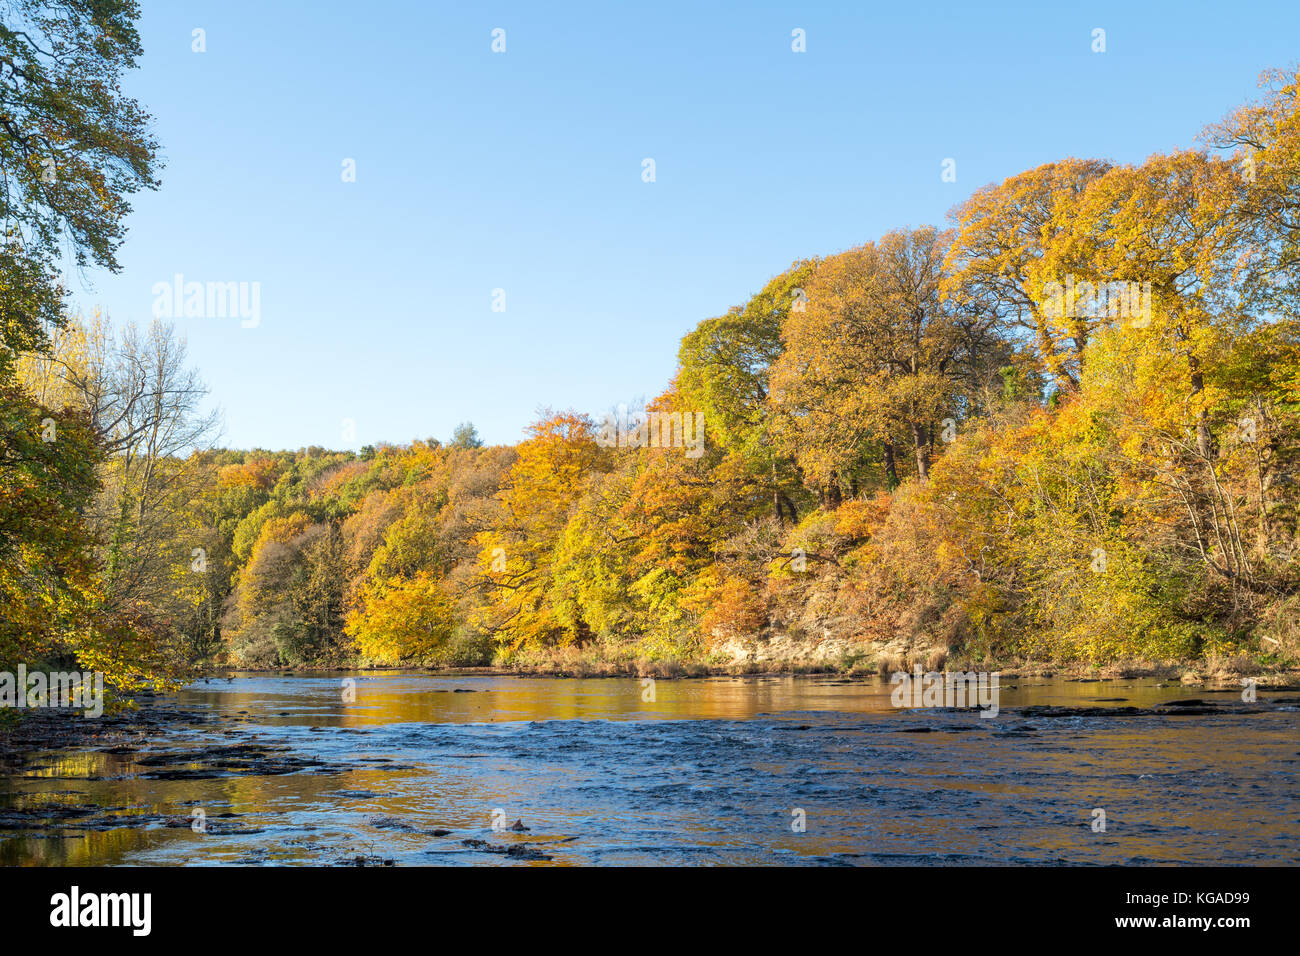 autumn-view-of-trees-along-the-river-wea